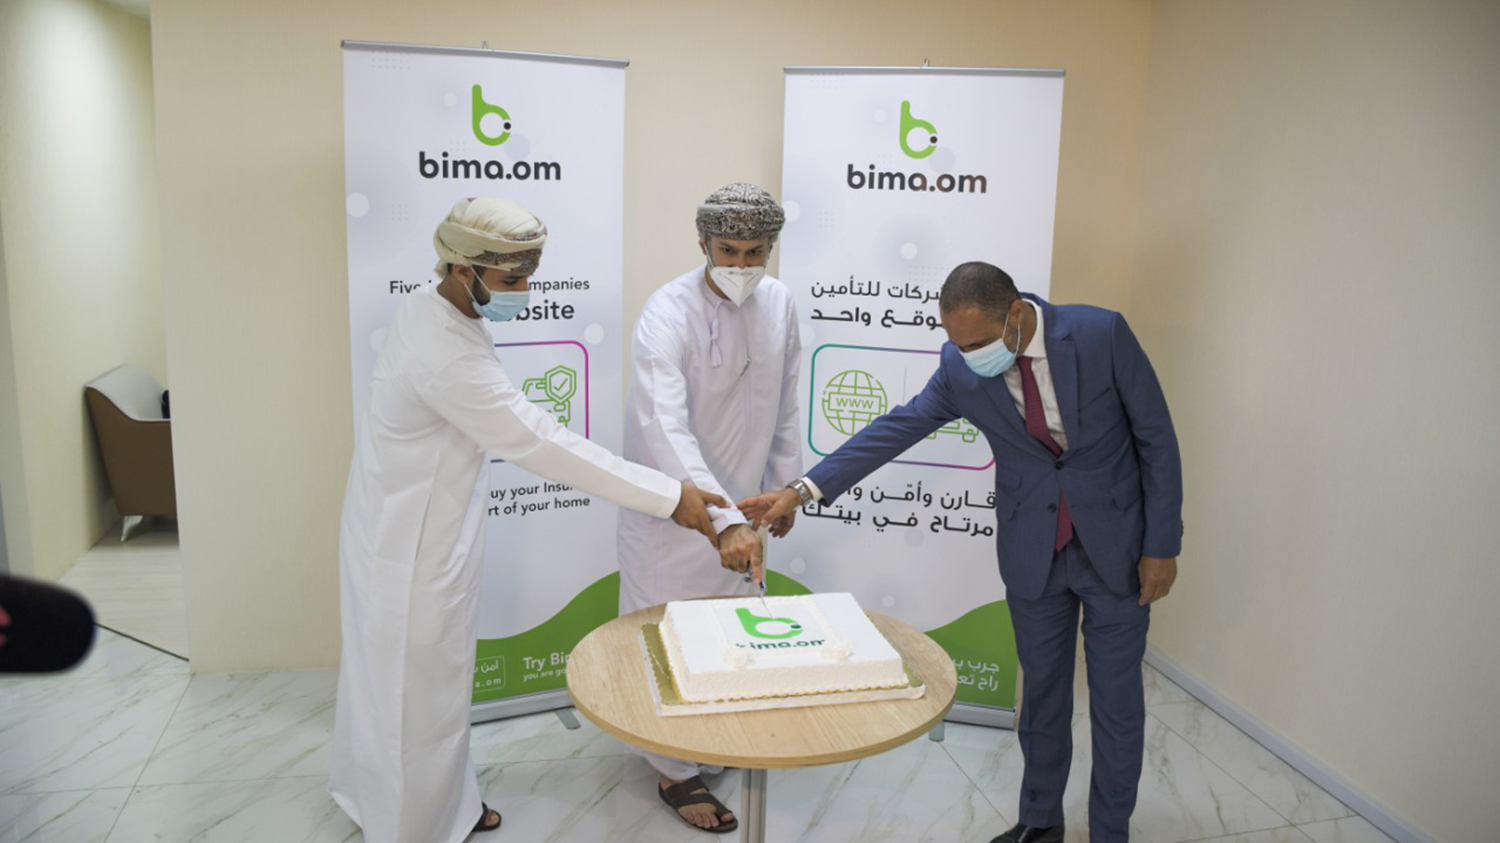 Online platform to provide insurance services launched